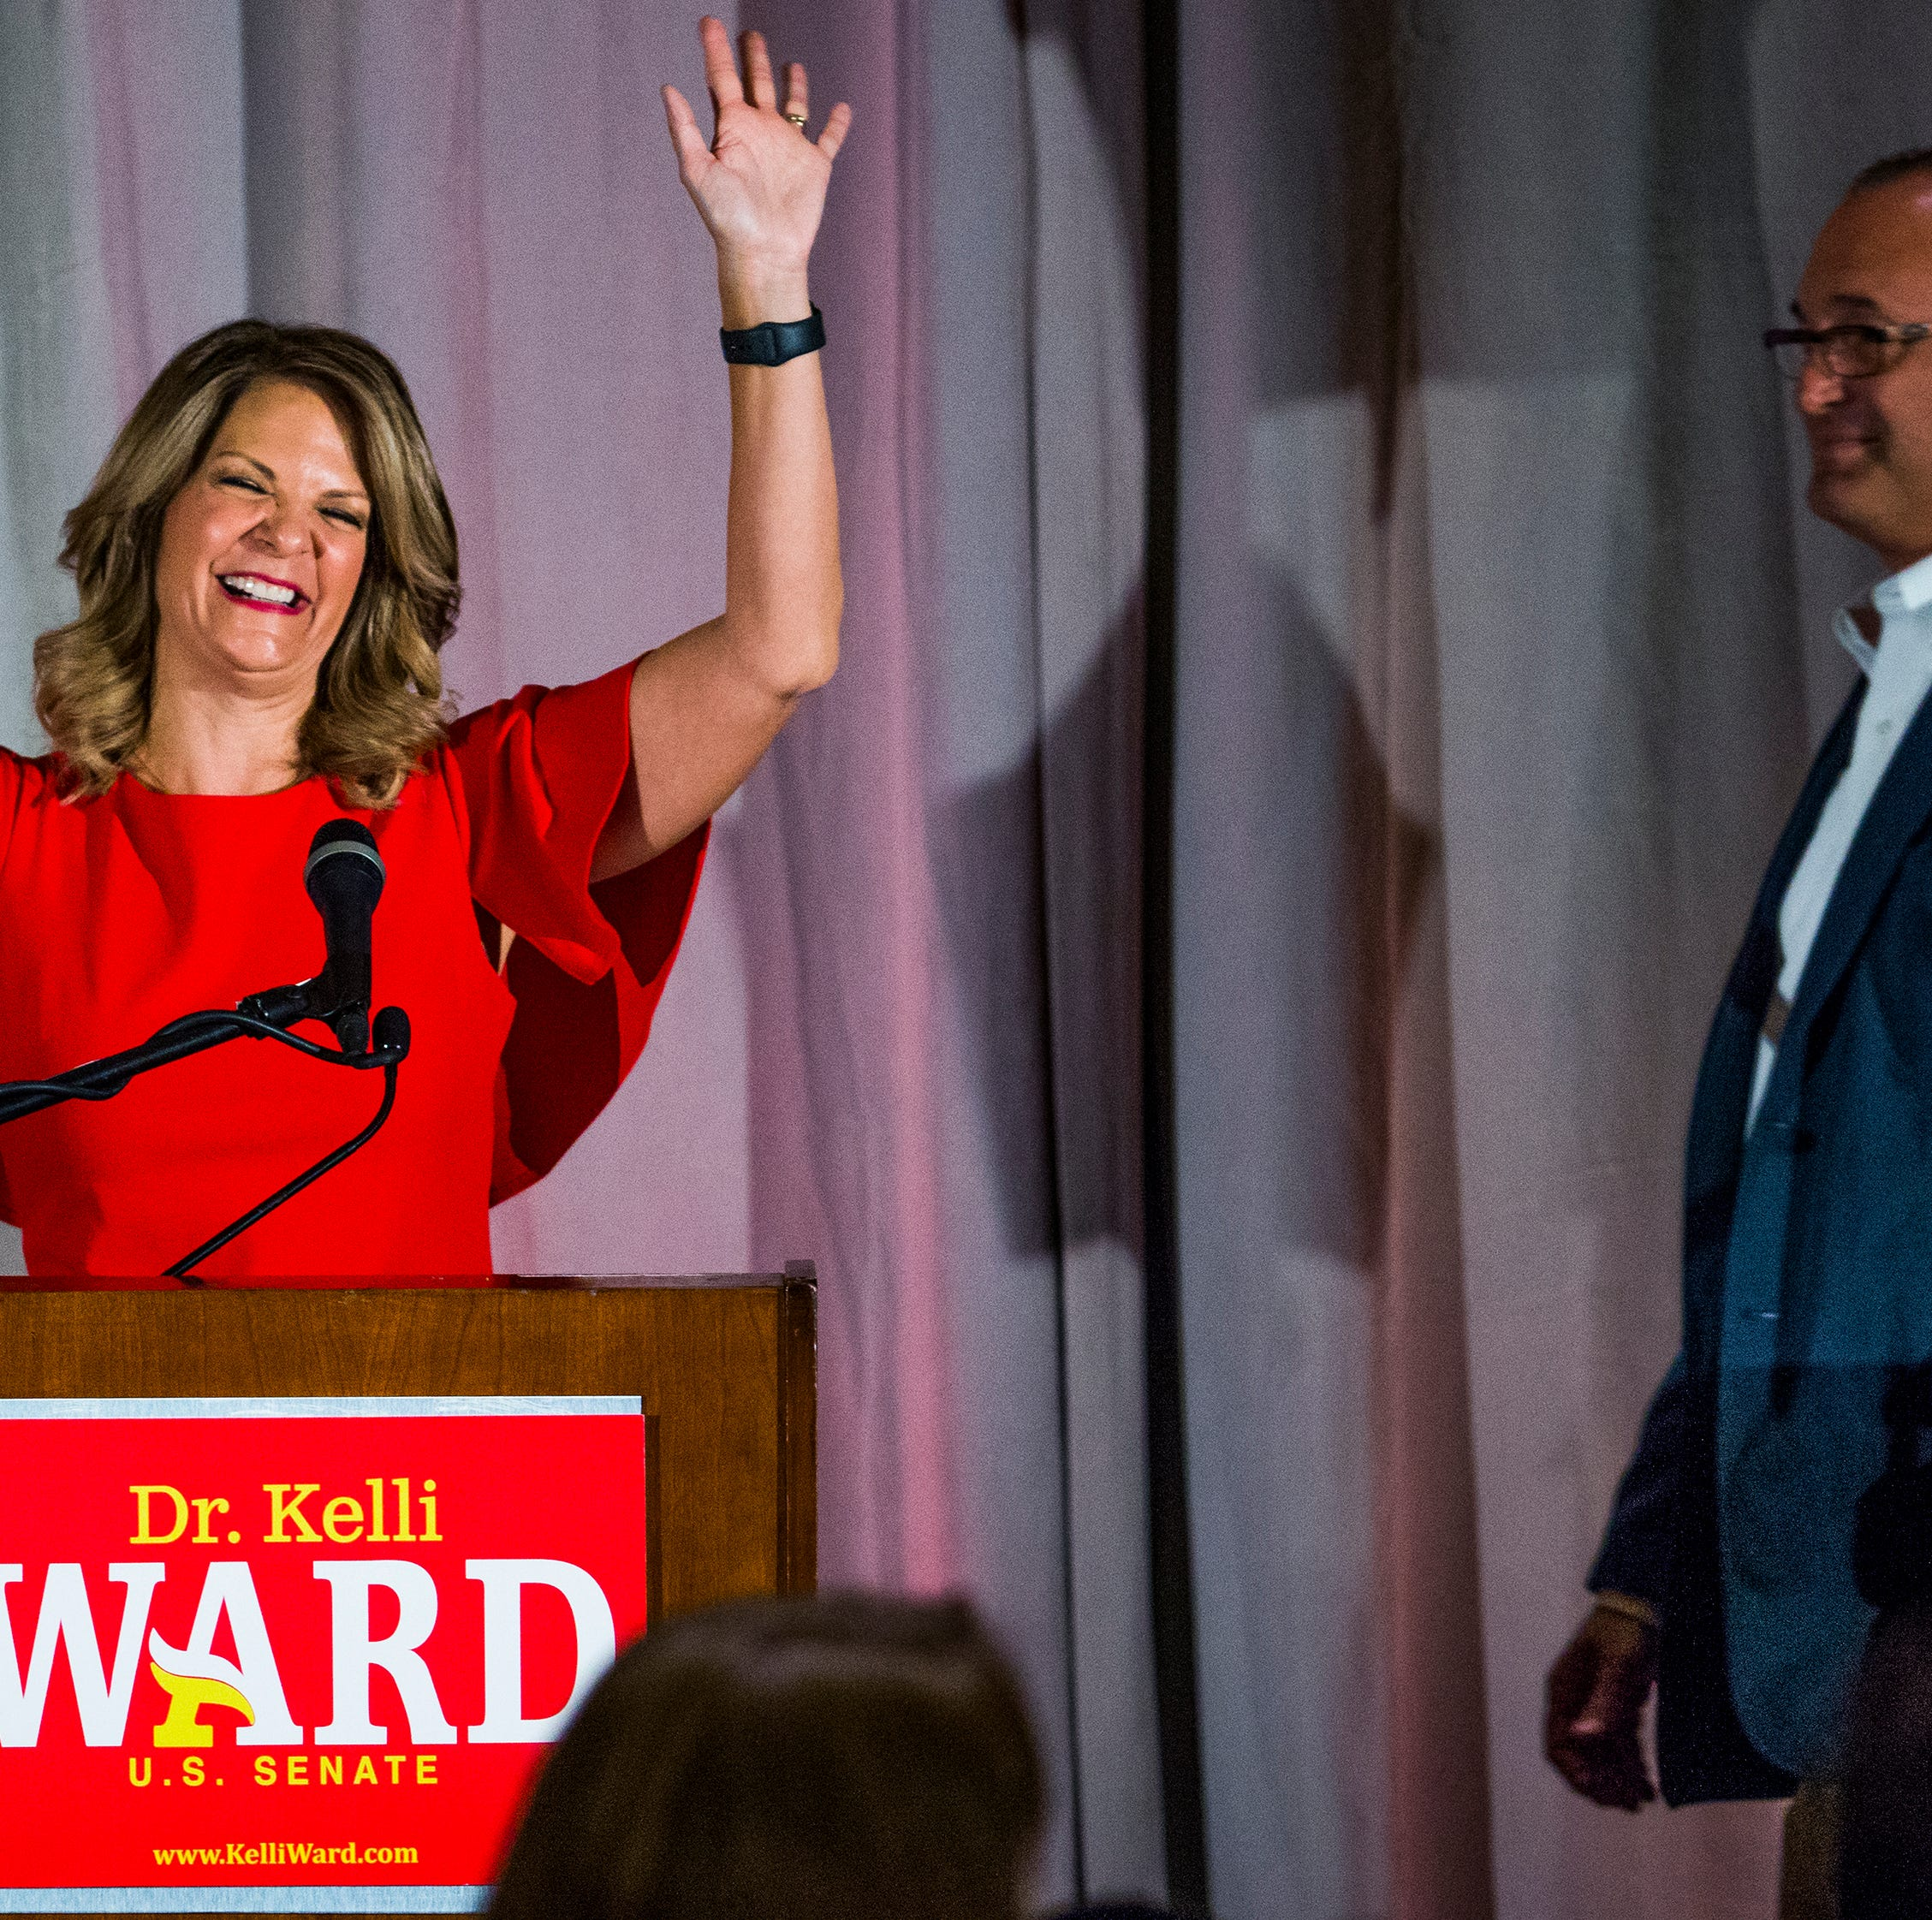 Kelli Ward and the Arizona Republican Party want to RAISE taxes? Is this bizarro world?